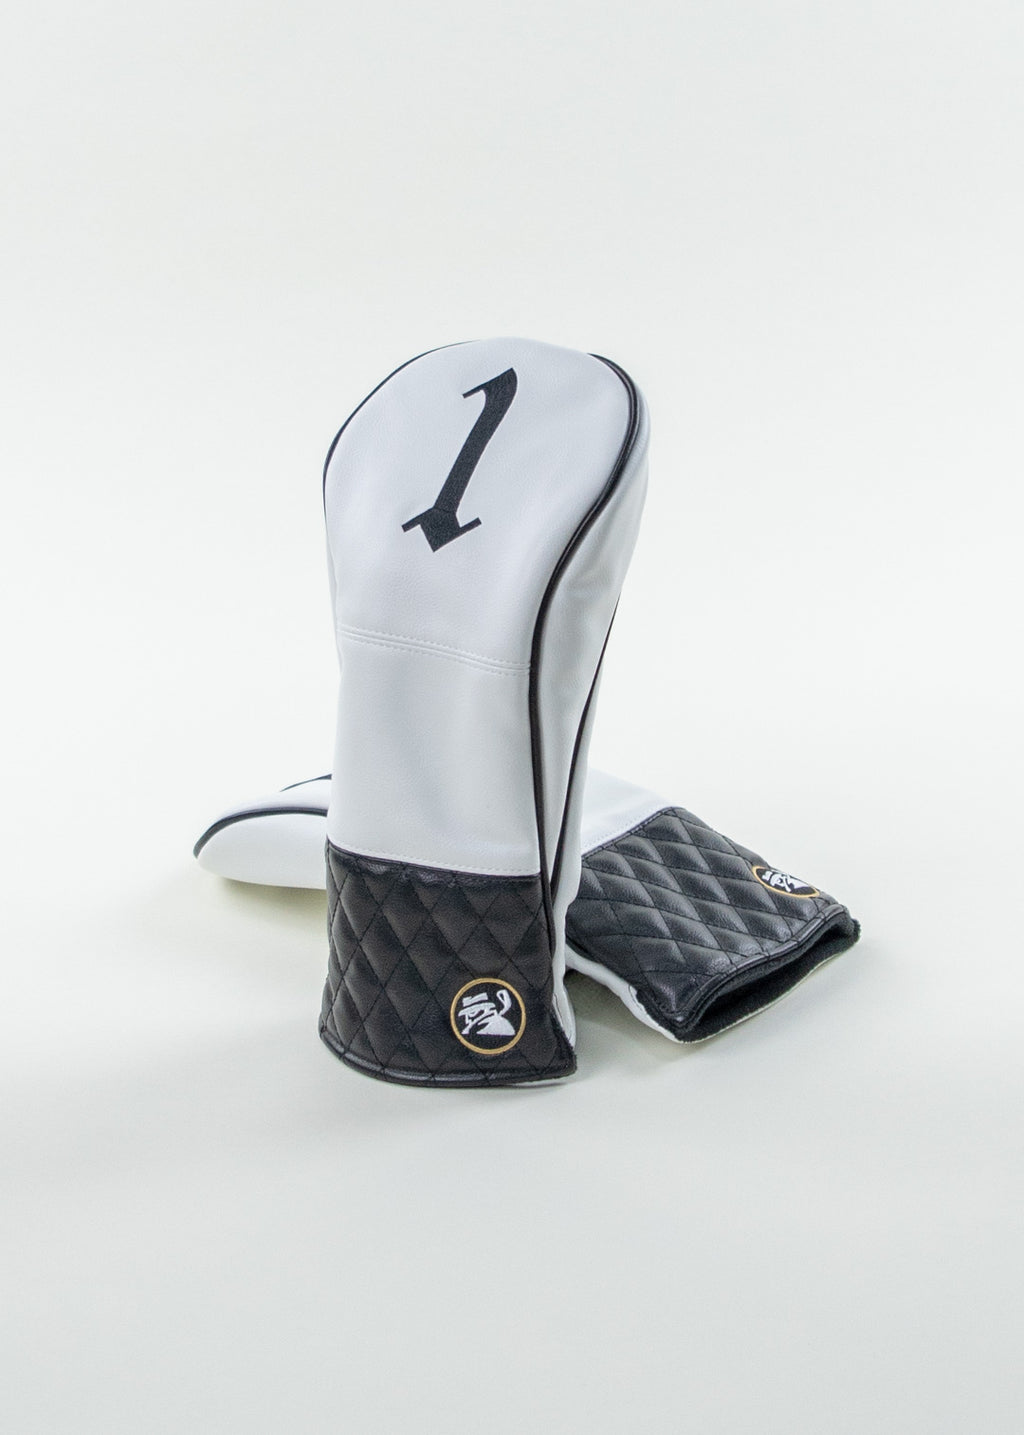 MyGolfSpy Staff Collection | Driver Headcover